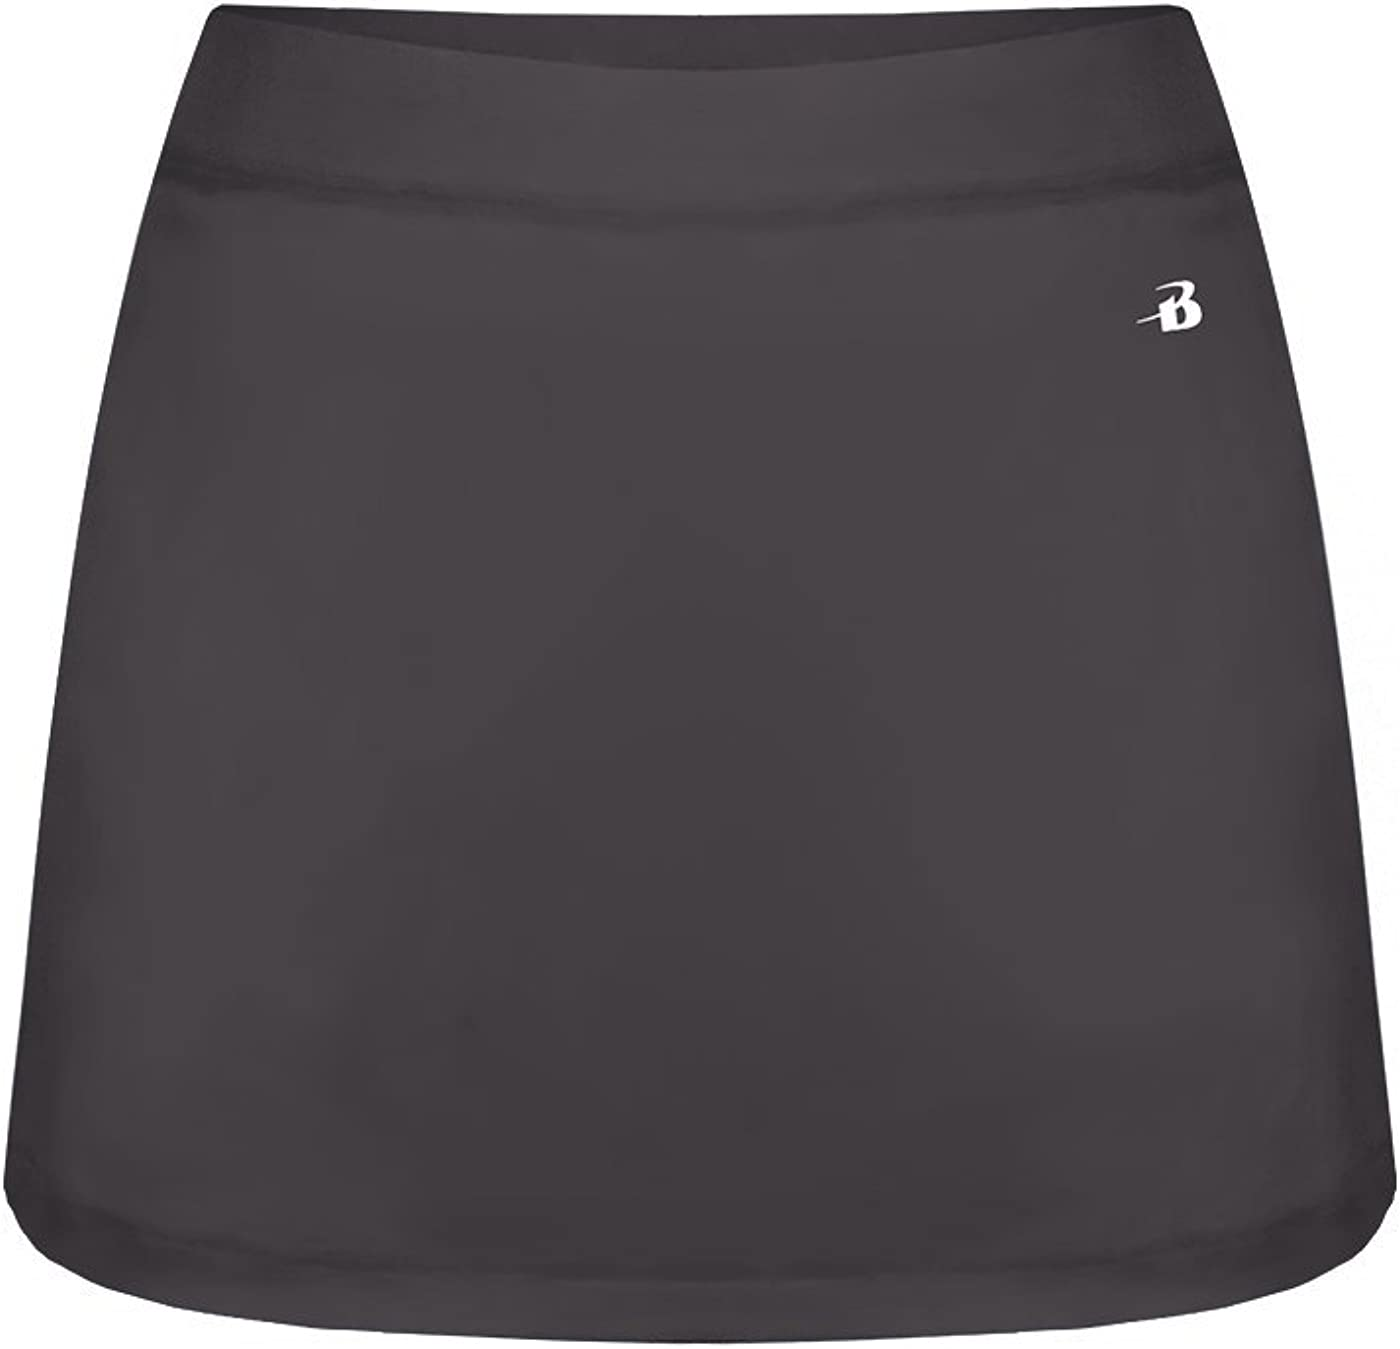 Womens Skort Athletic Wicking Performance with Inner Short /& Triangle Gusset